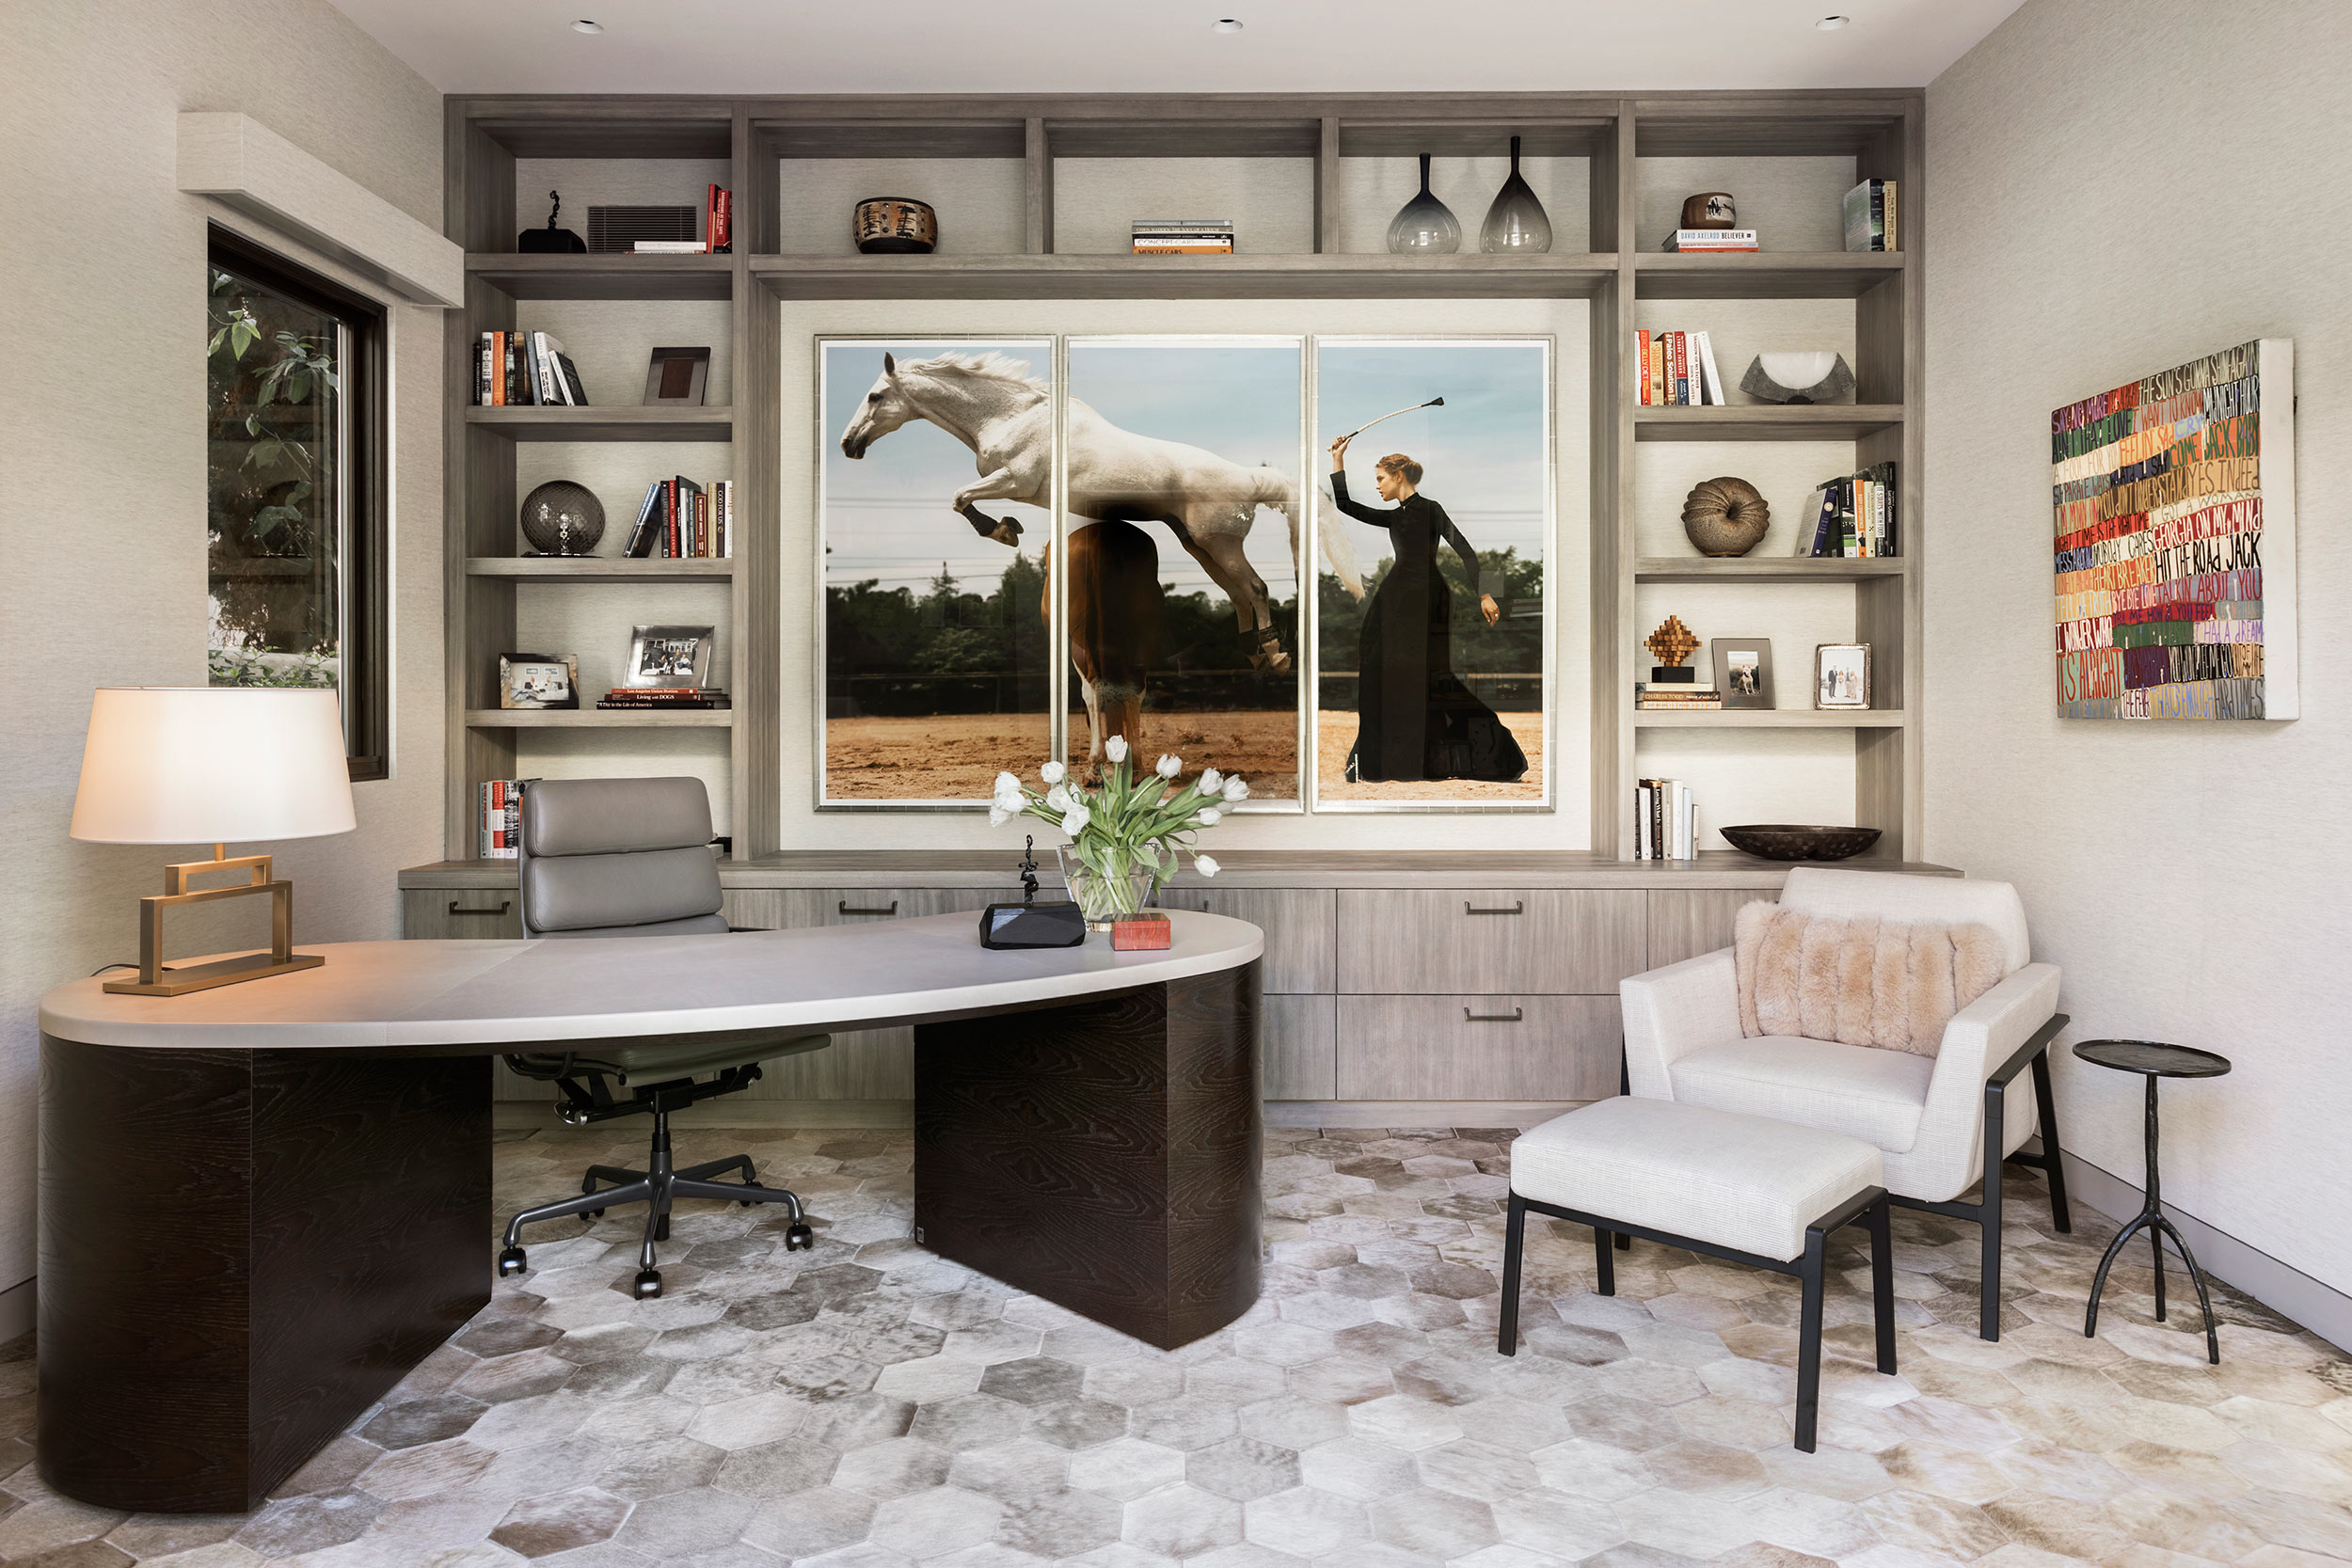 Residential office with art and custom millwork